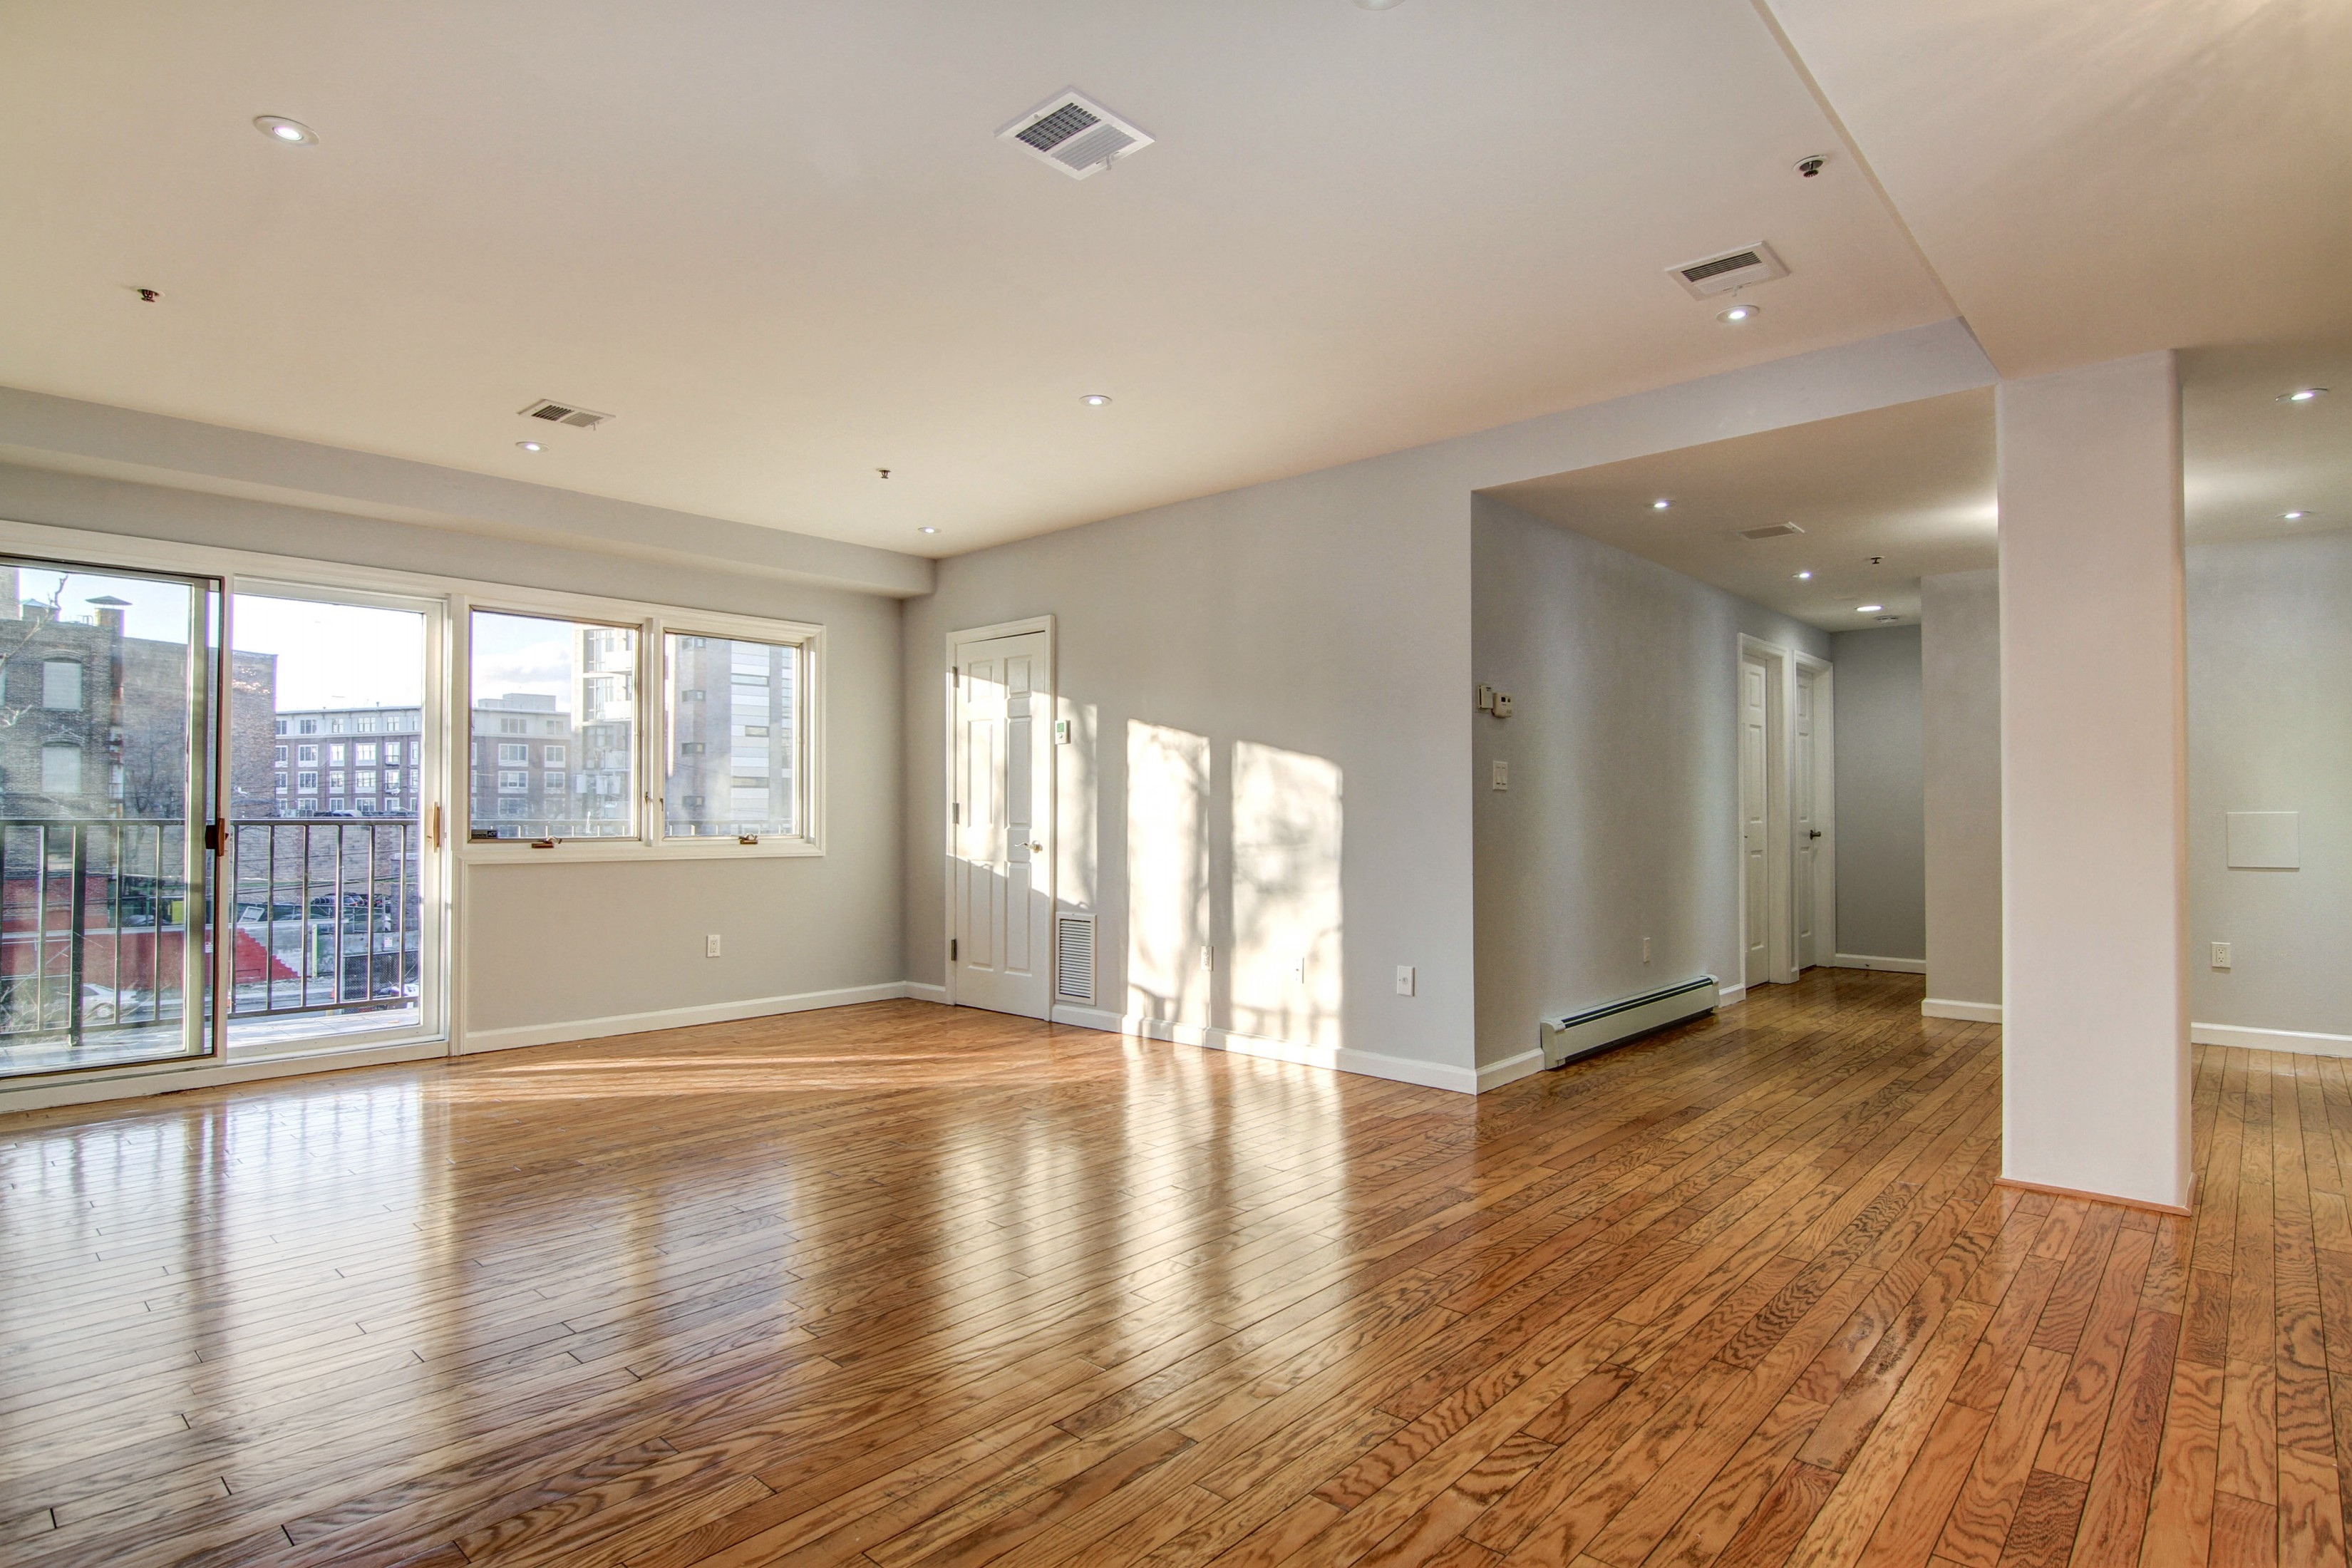 Single Family Home for Sale at Downtown Park Ave 2BR + Parking! 72 Park Ave #2B Hoboken, New Jersey 07030 United States